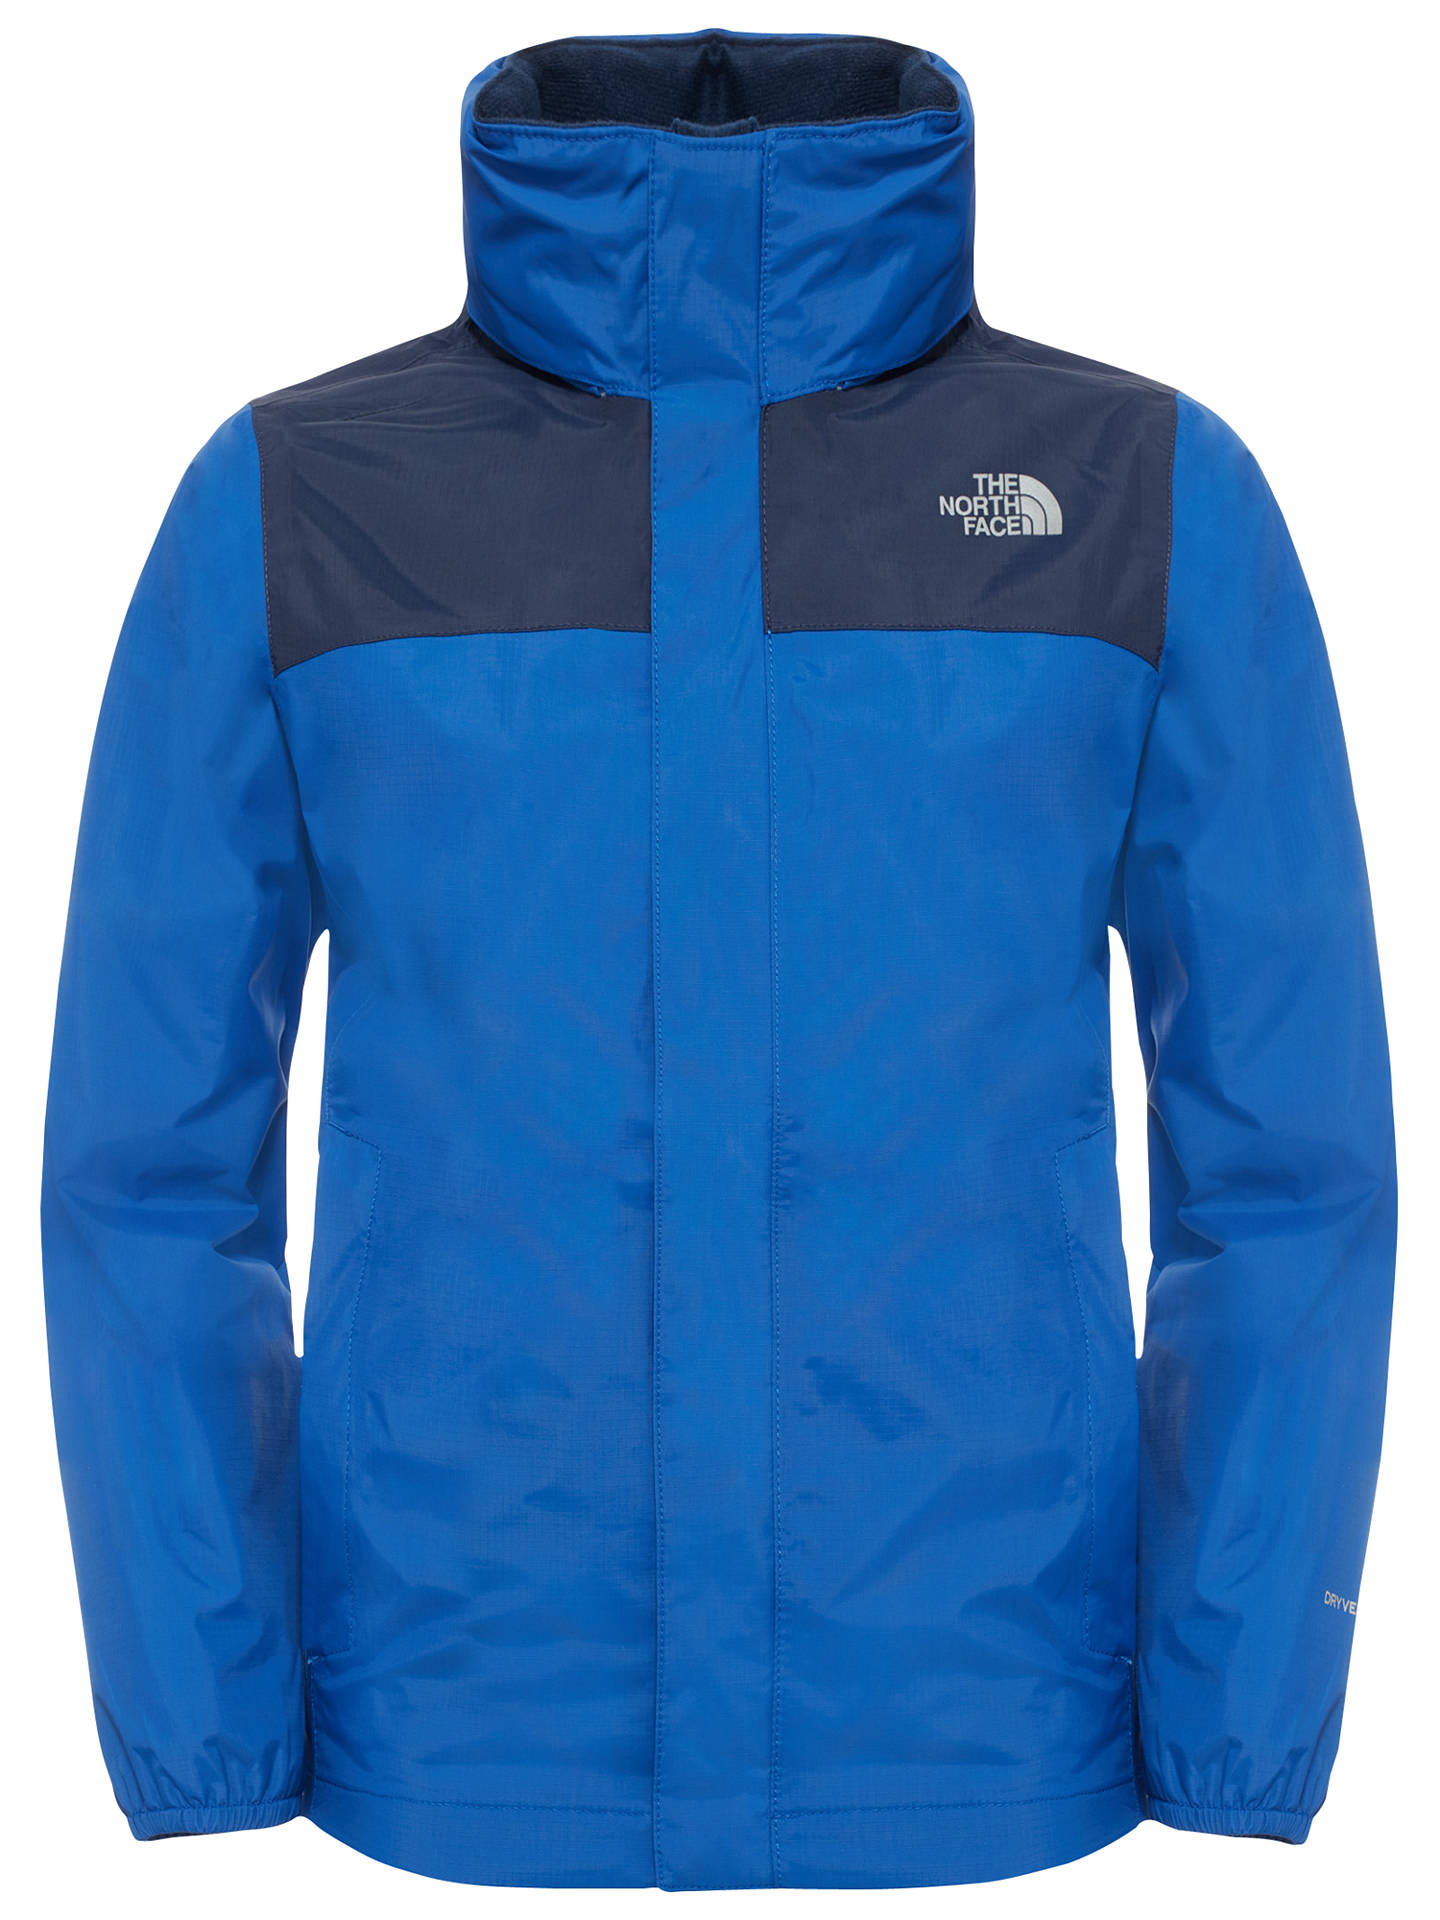 f7bcc3d99d23 The North Face Boys  Resolve Waterproof Jacket at John Lewis   Partners